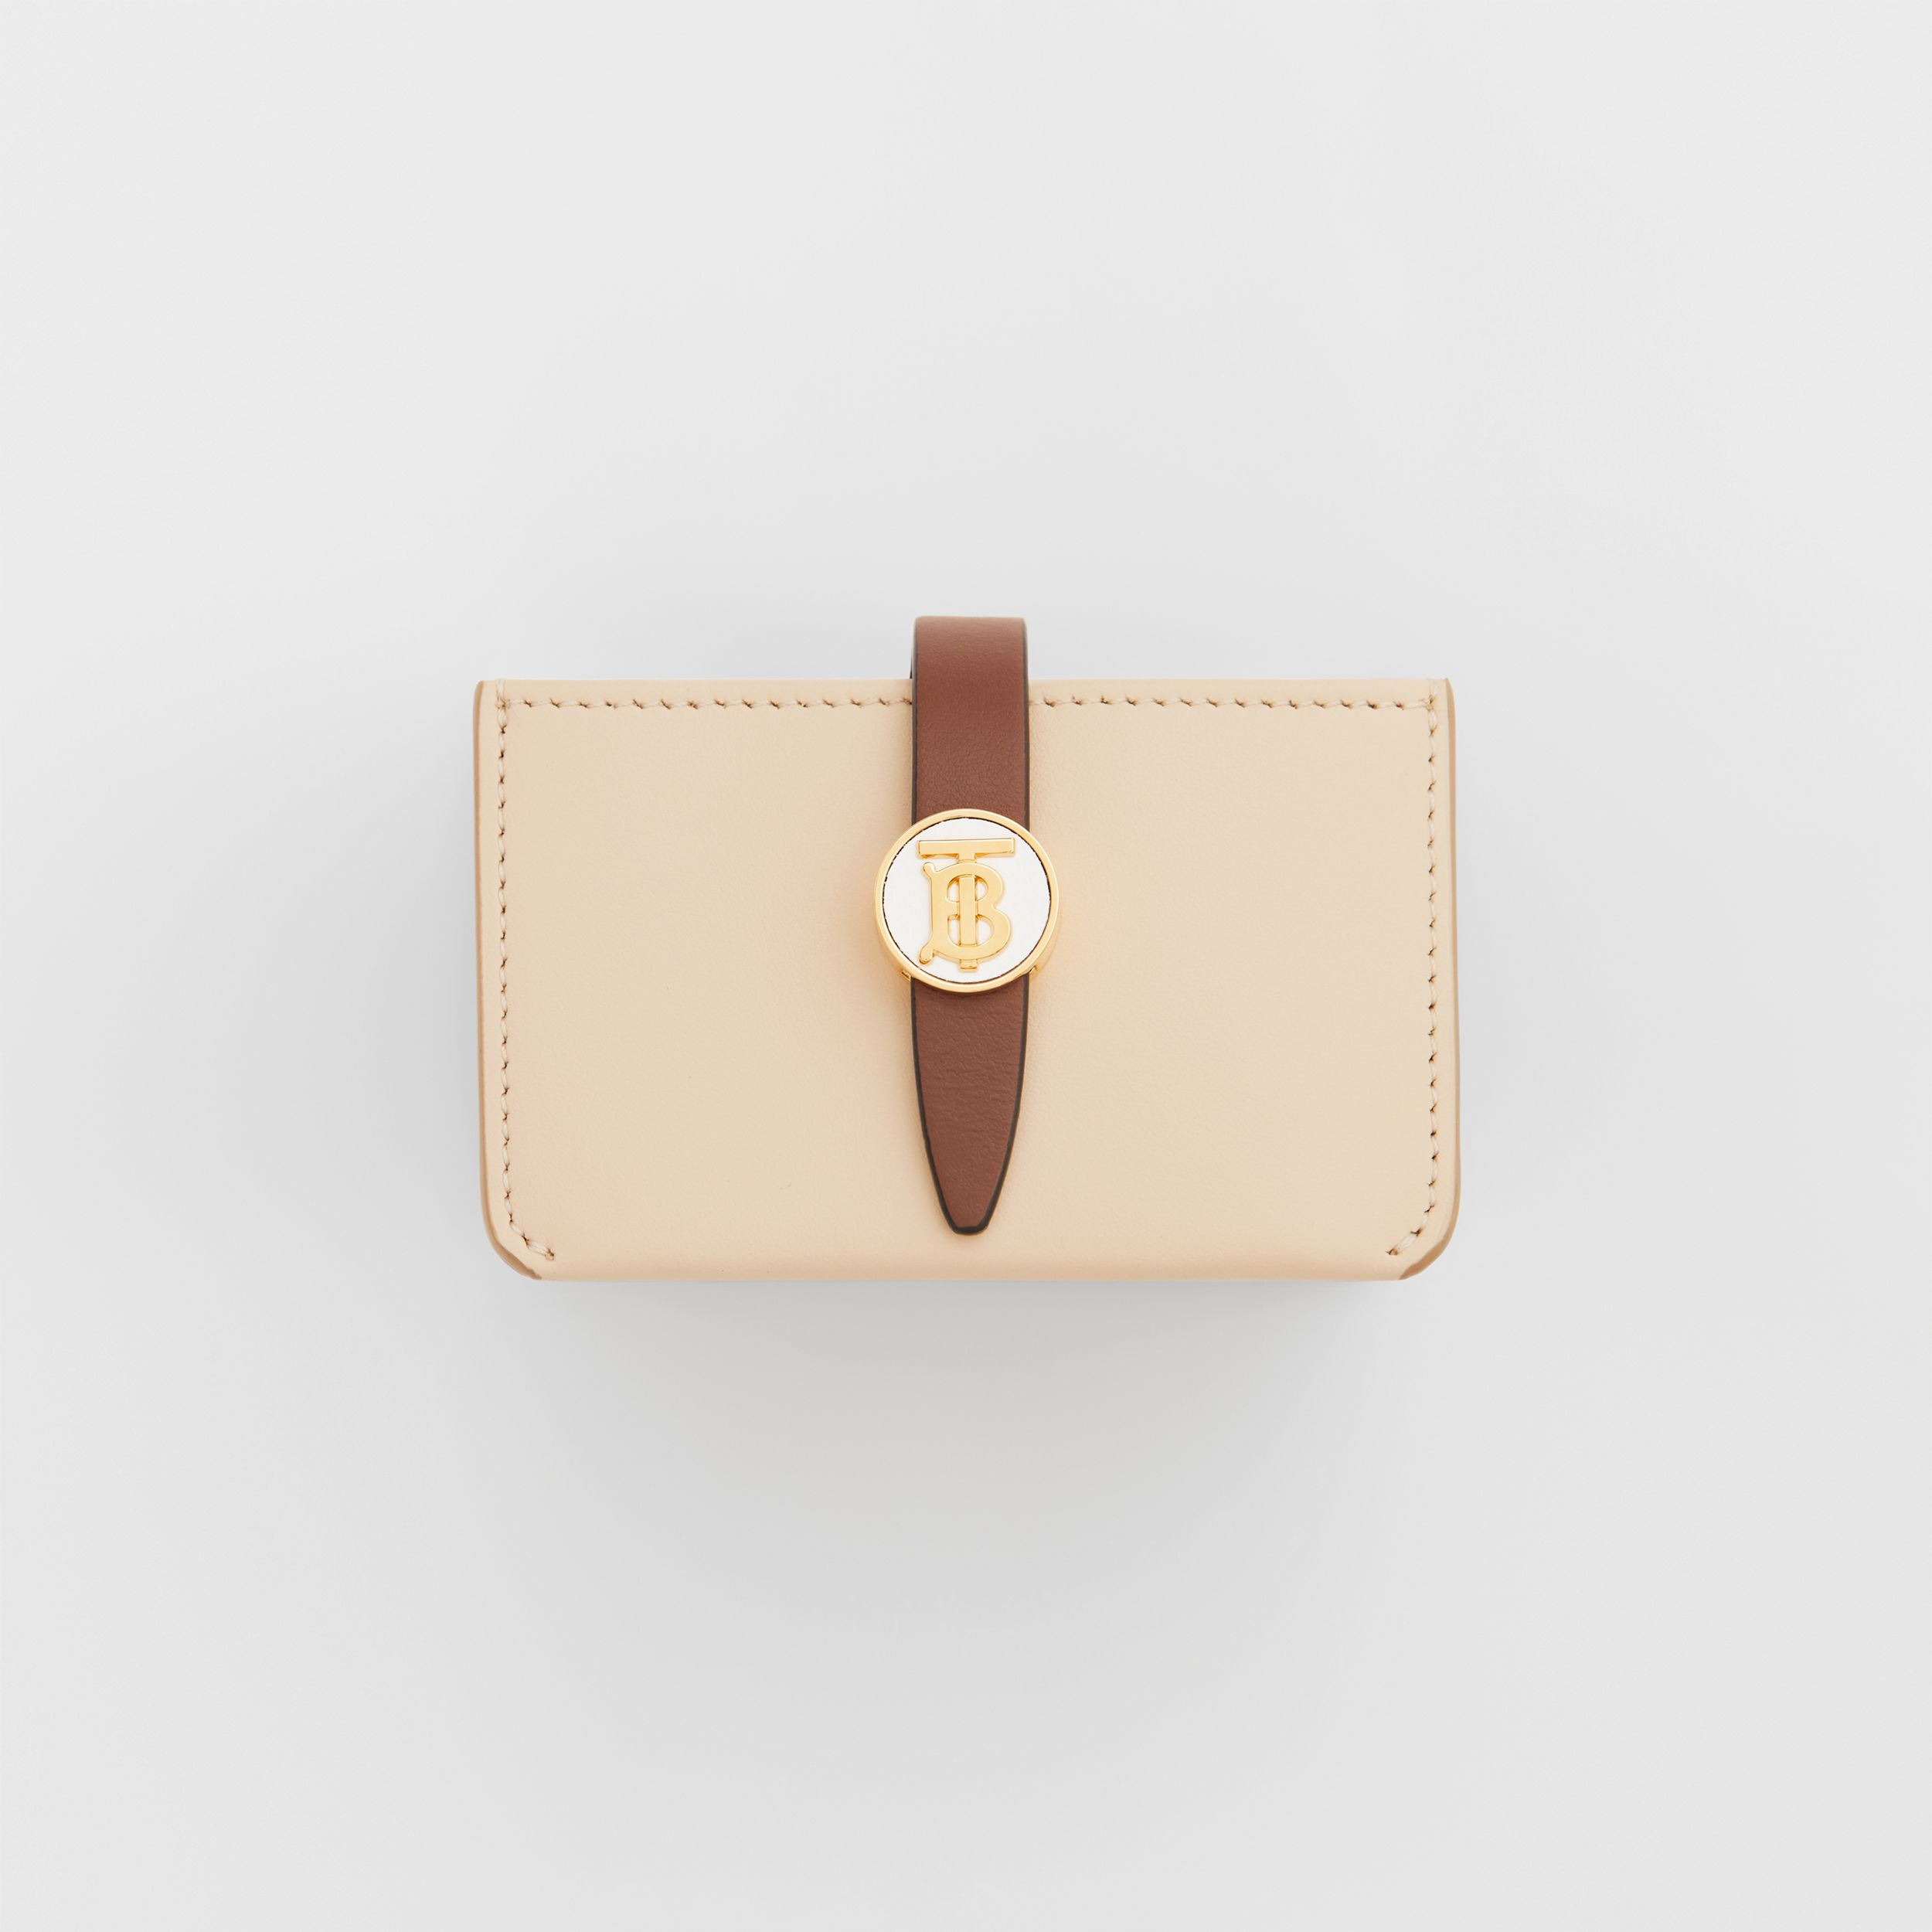 Monogram Motif Colour Block Leather Card Case in Tan/pale Copper/peony Pink - Women | Burberry - 3